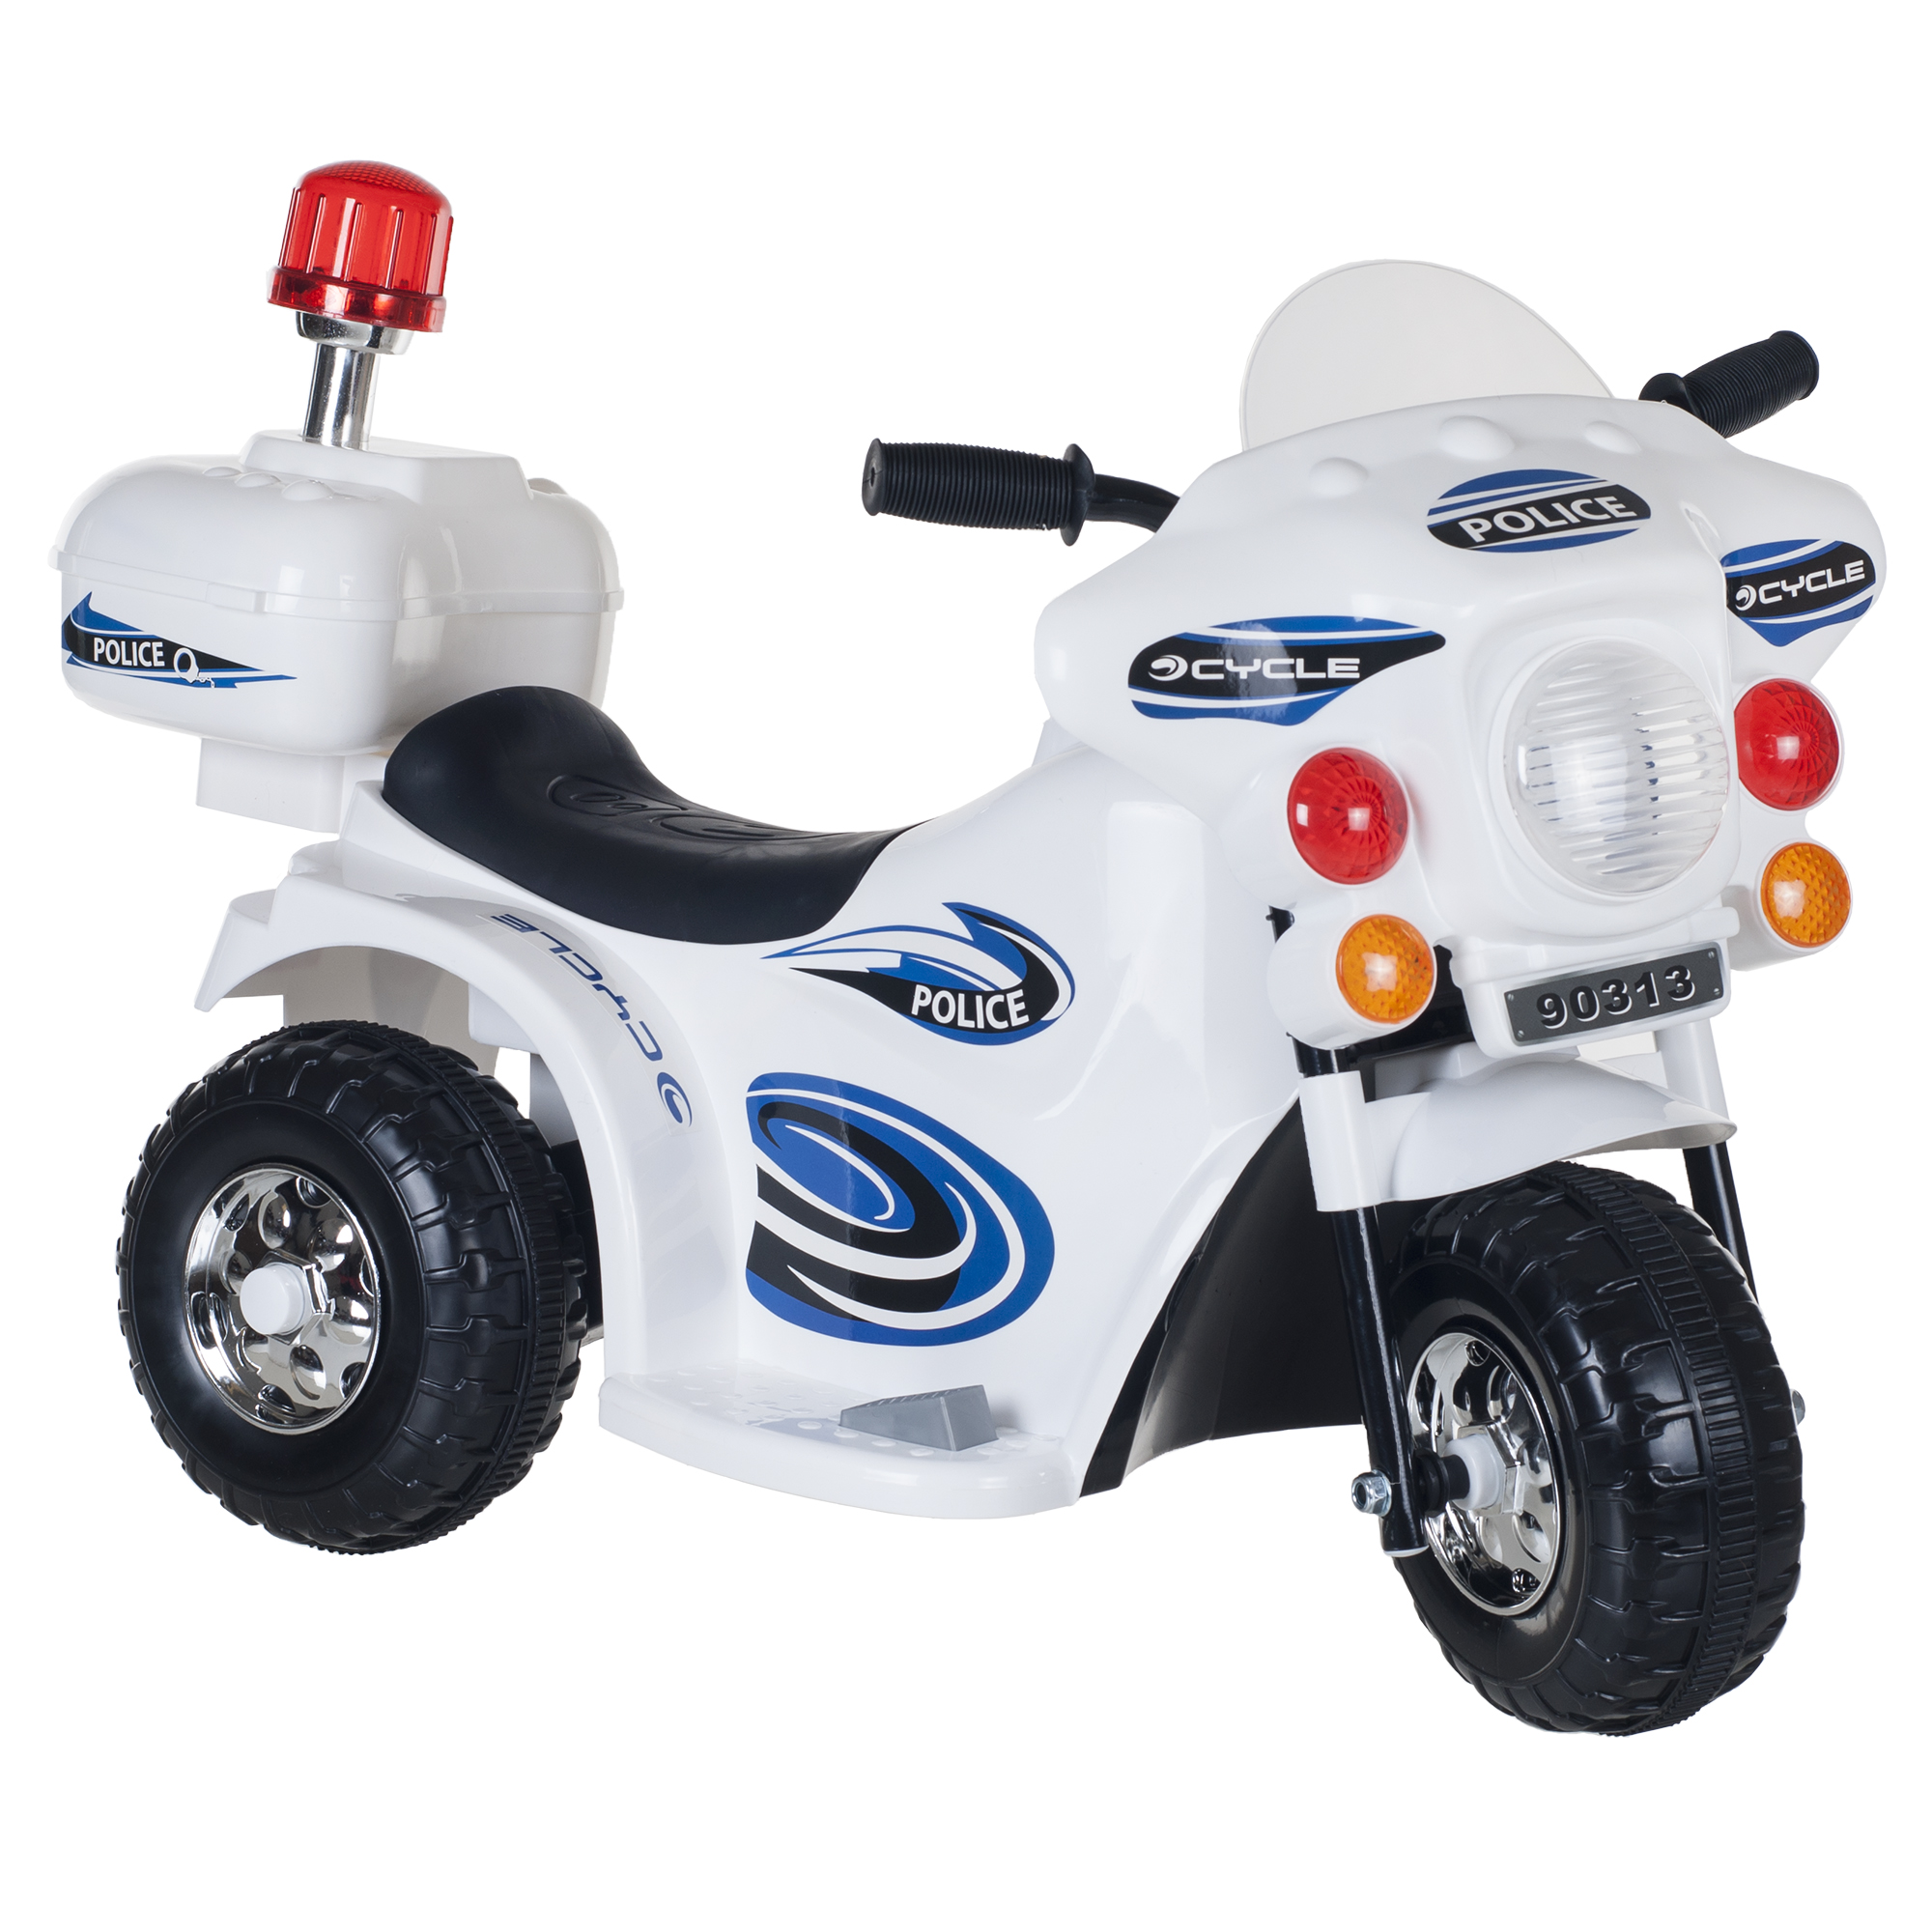 Ride on Toy, 3 Wheel Motorcycle for Kids, Battery Powered Ride On Toy by Hey! Play! � Ride... by Trademark Global LLC